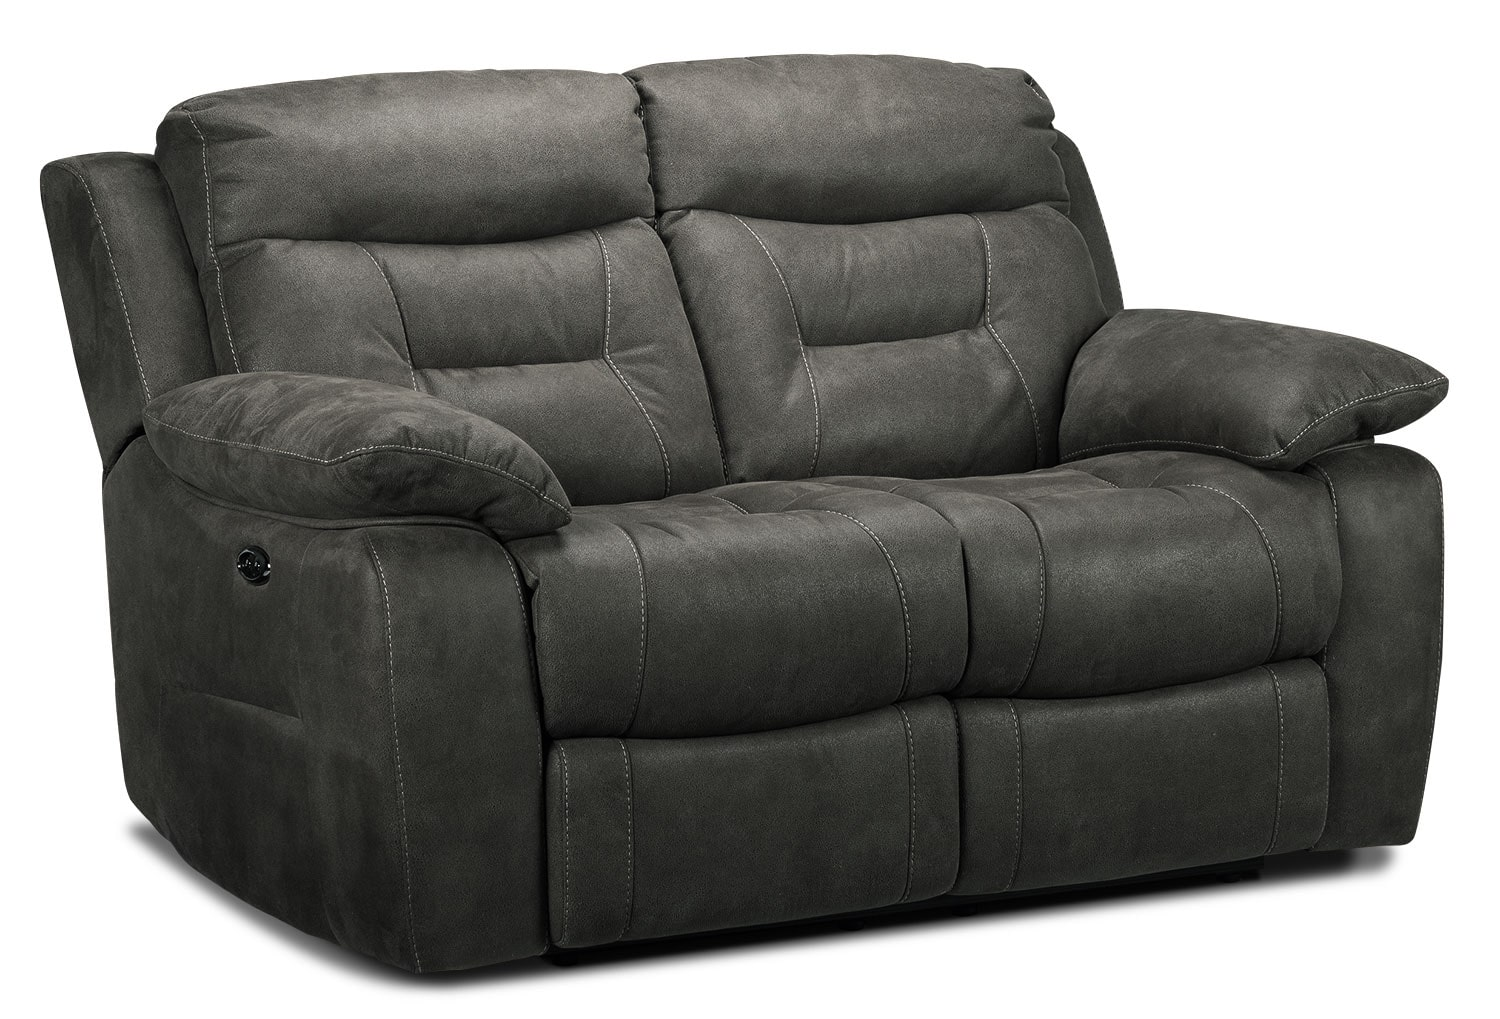 Living Room Furniture - Collins Power Reclining Loveseat - Charcoal Grey